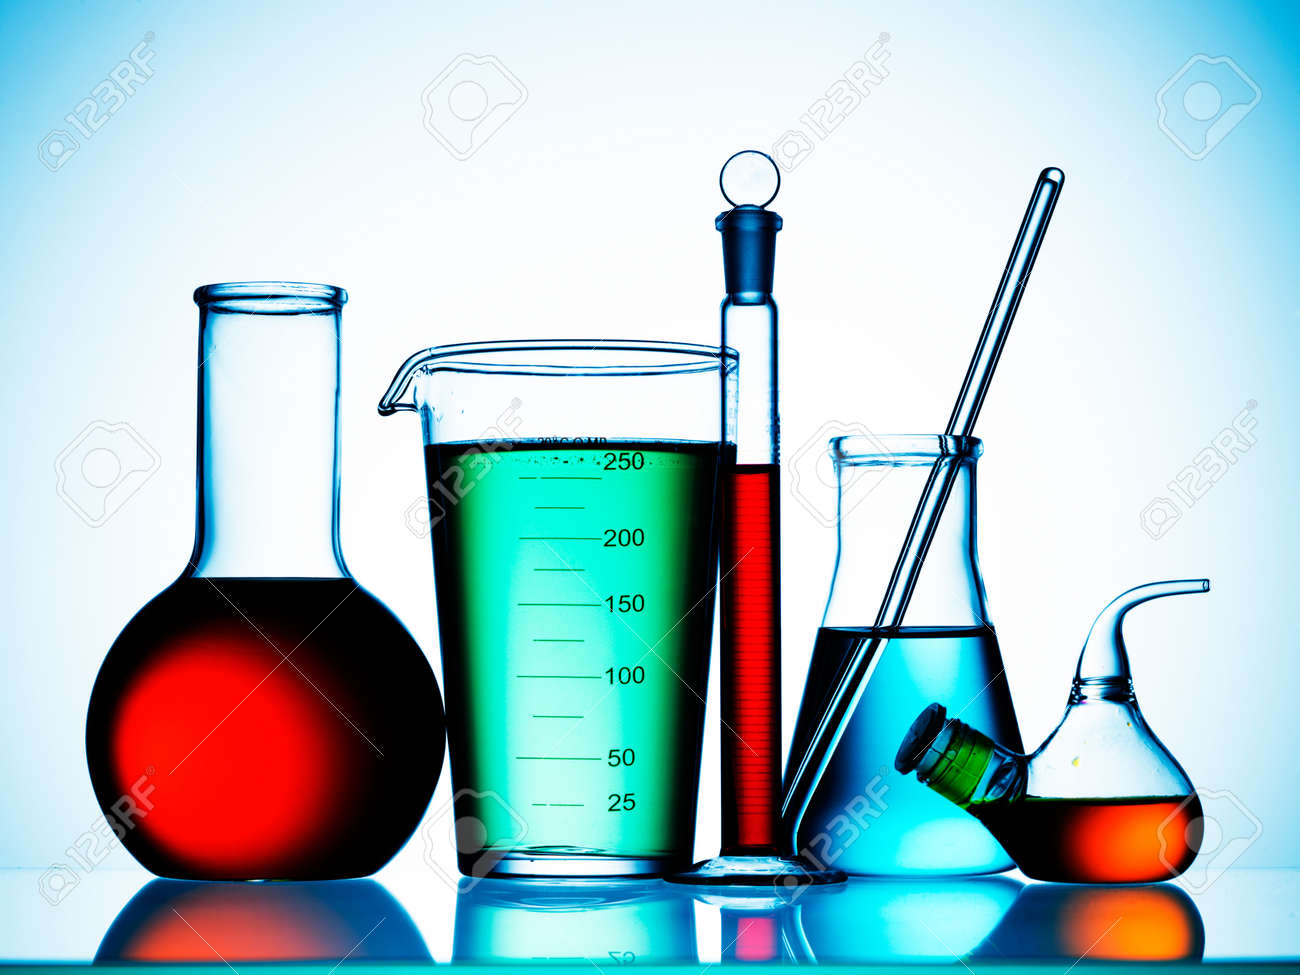 Assorted Laboratory Glassware Equipment Ready For An Experiment ...